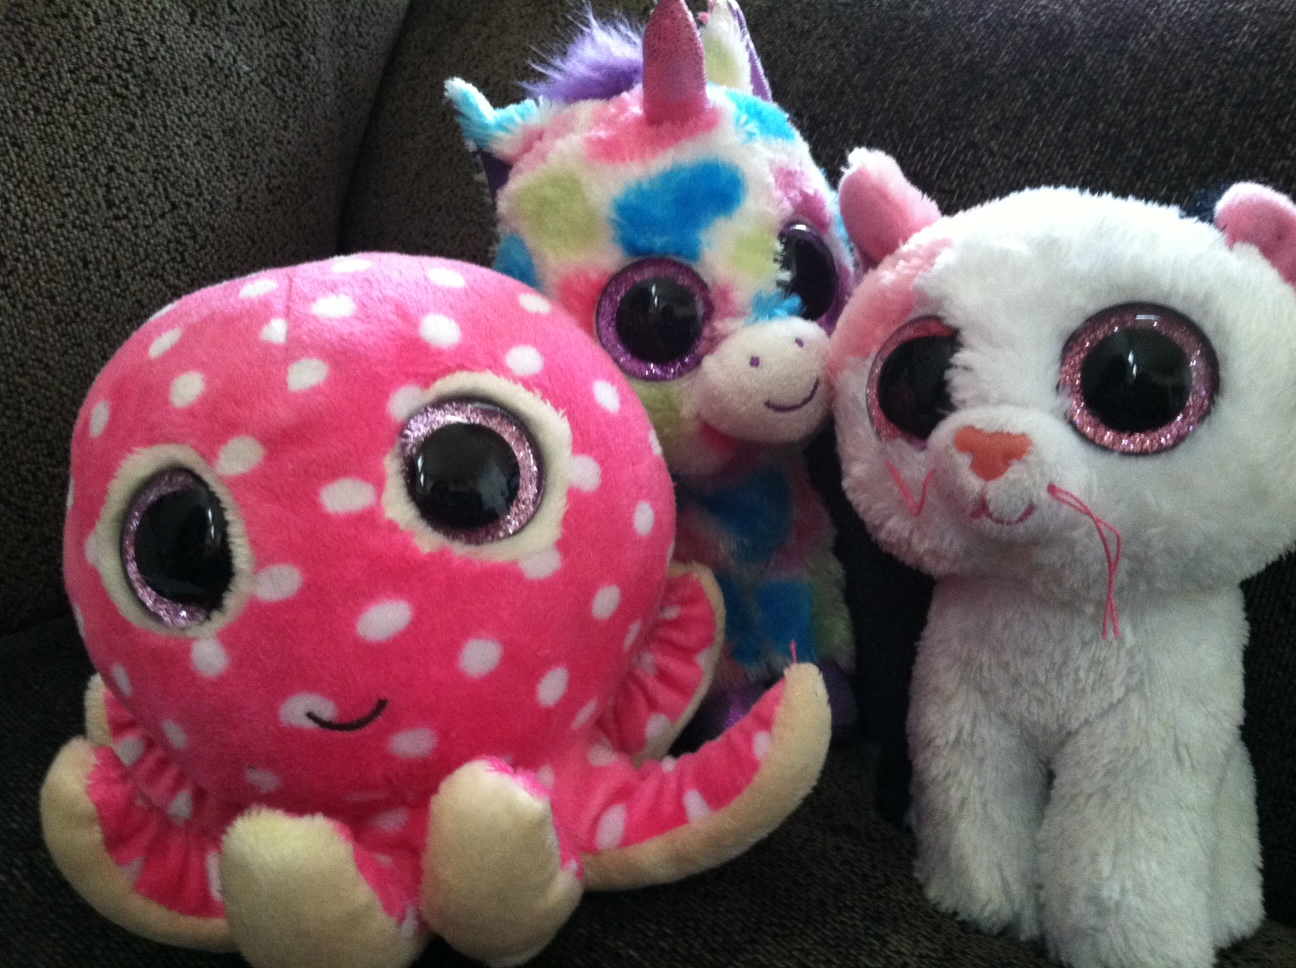 A picture of three Ty stuffed animals